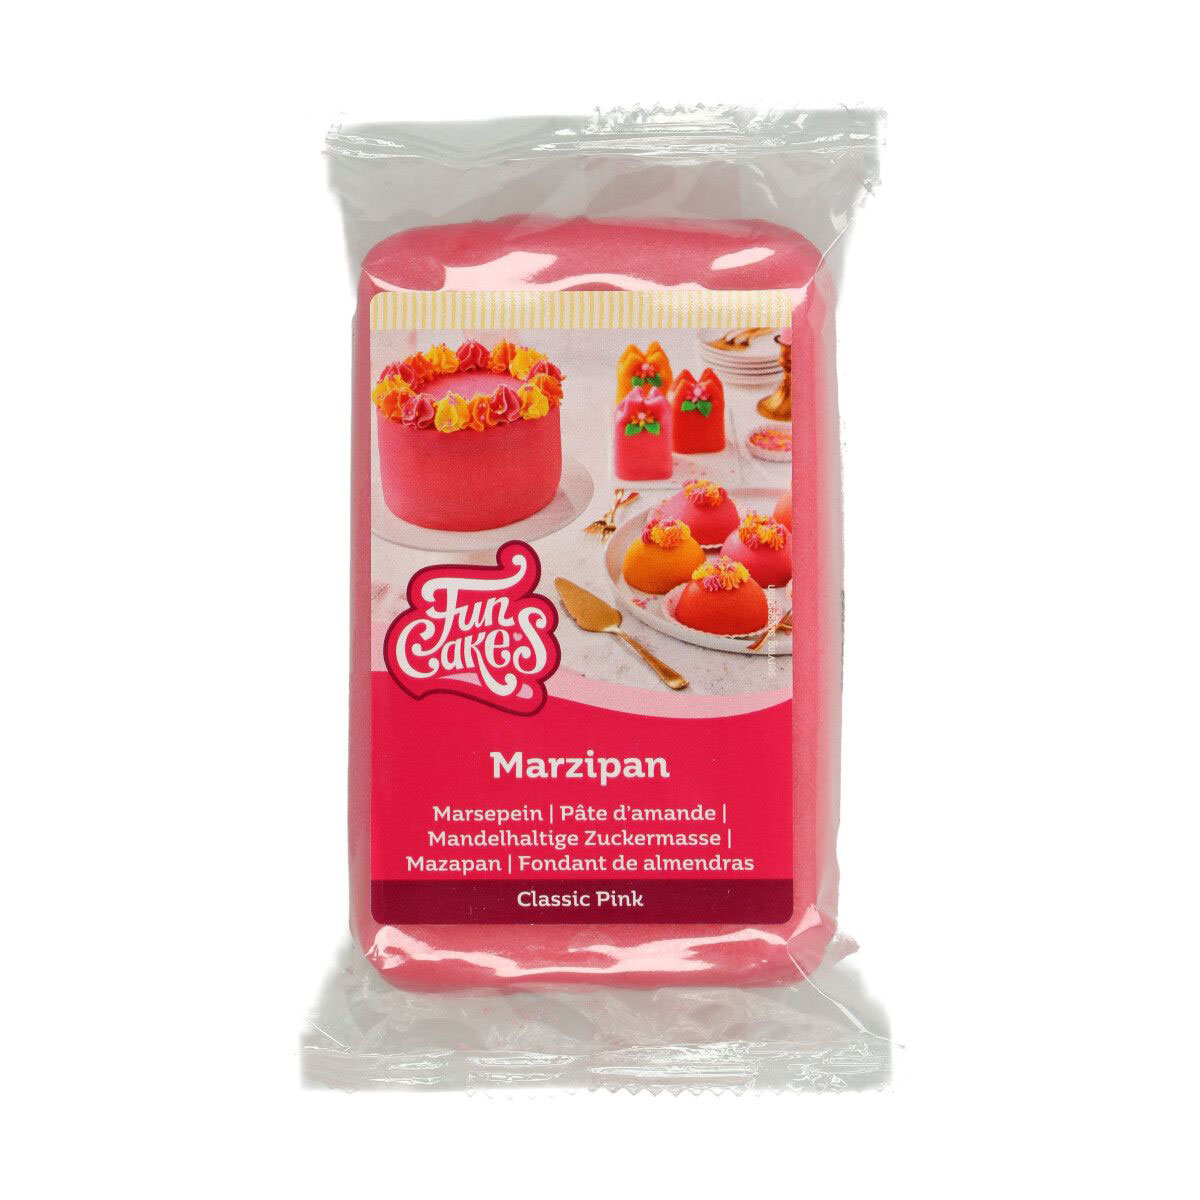 FunCakes feines Marzipan Classic Pink 250 g